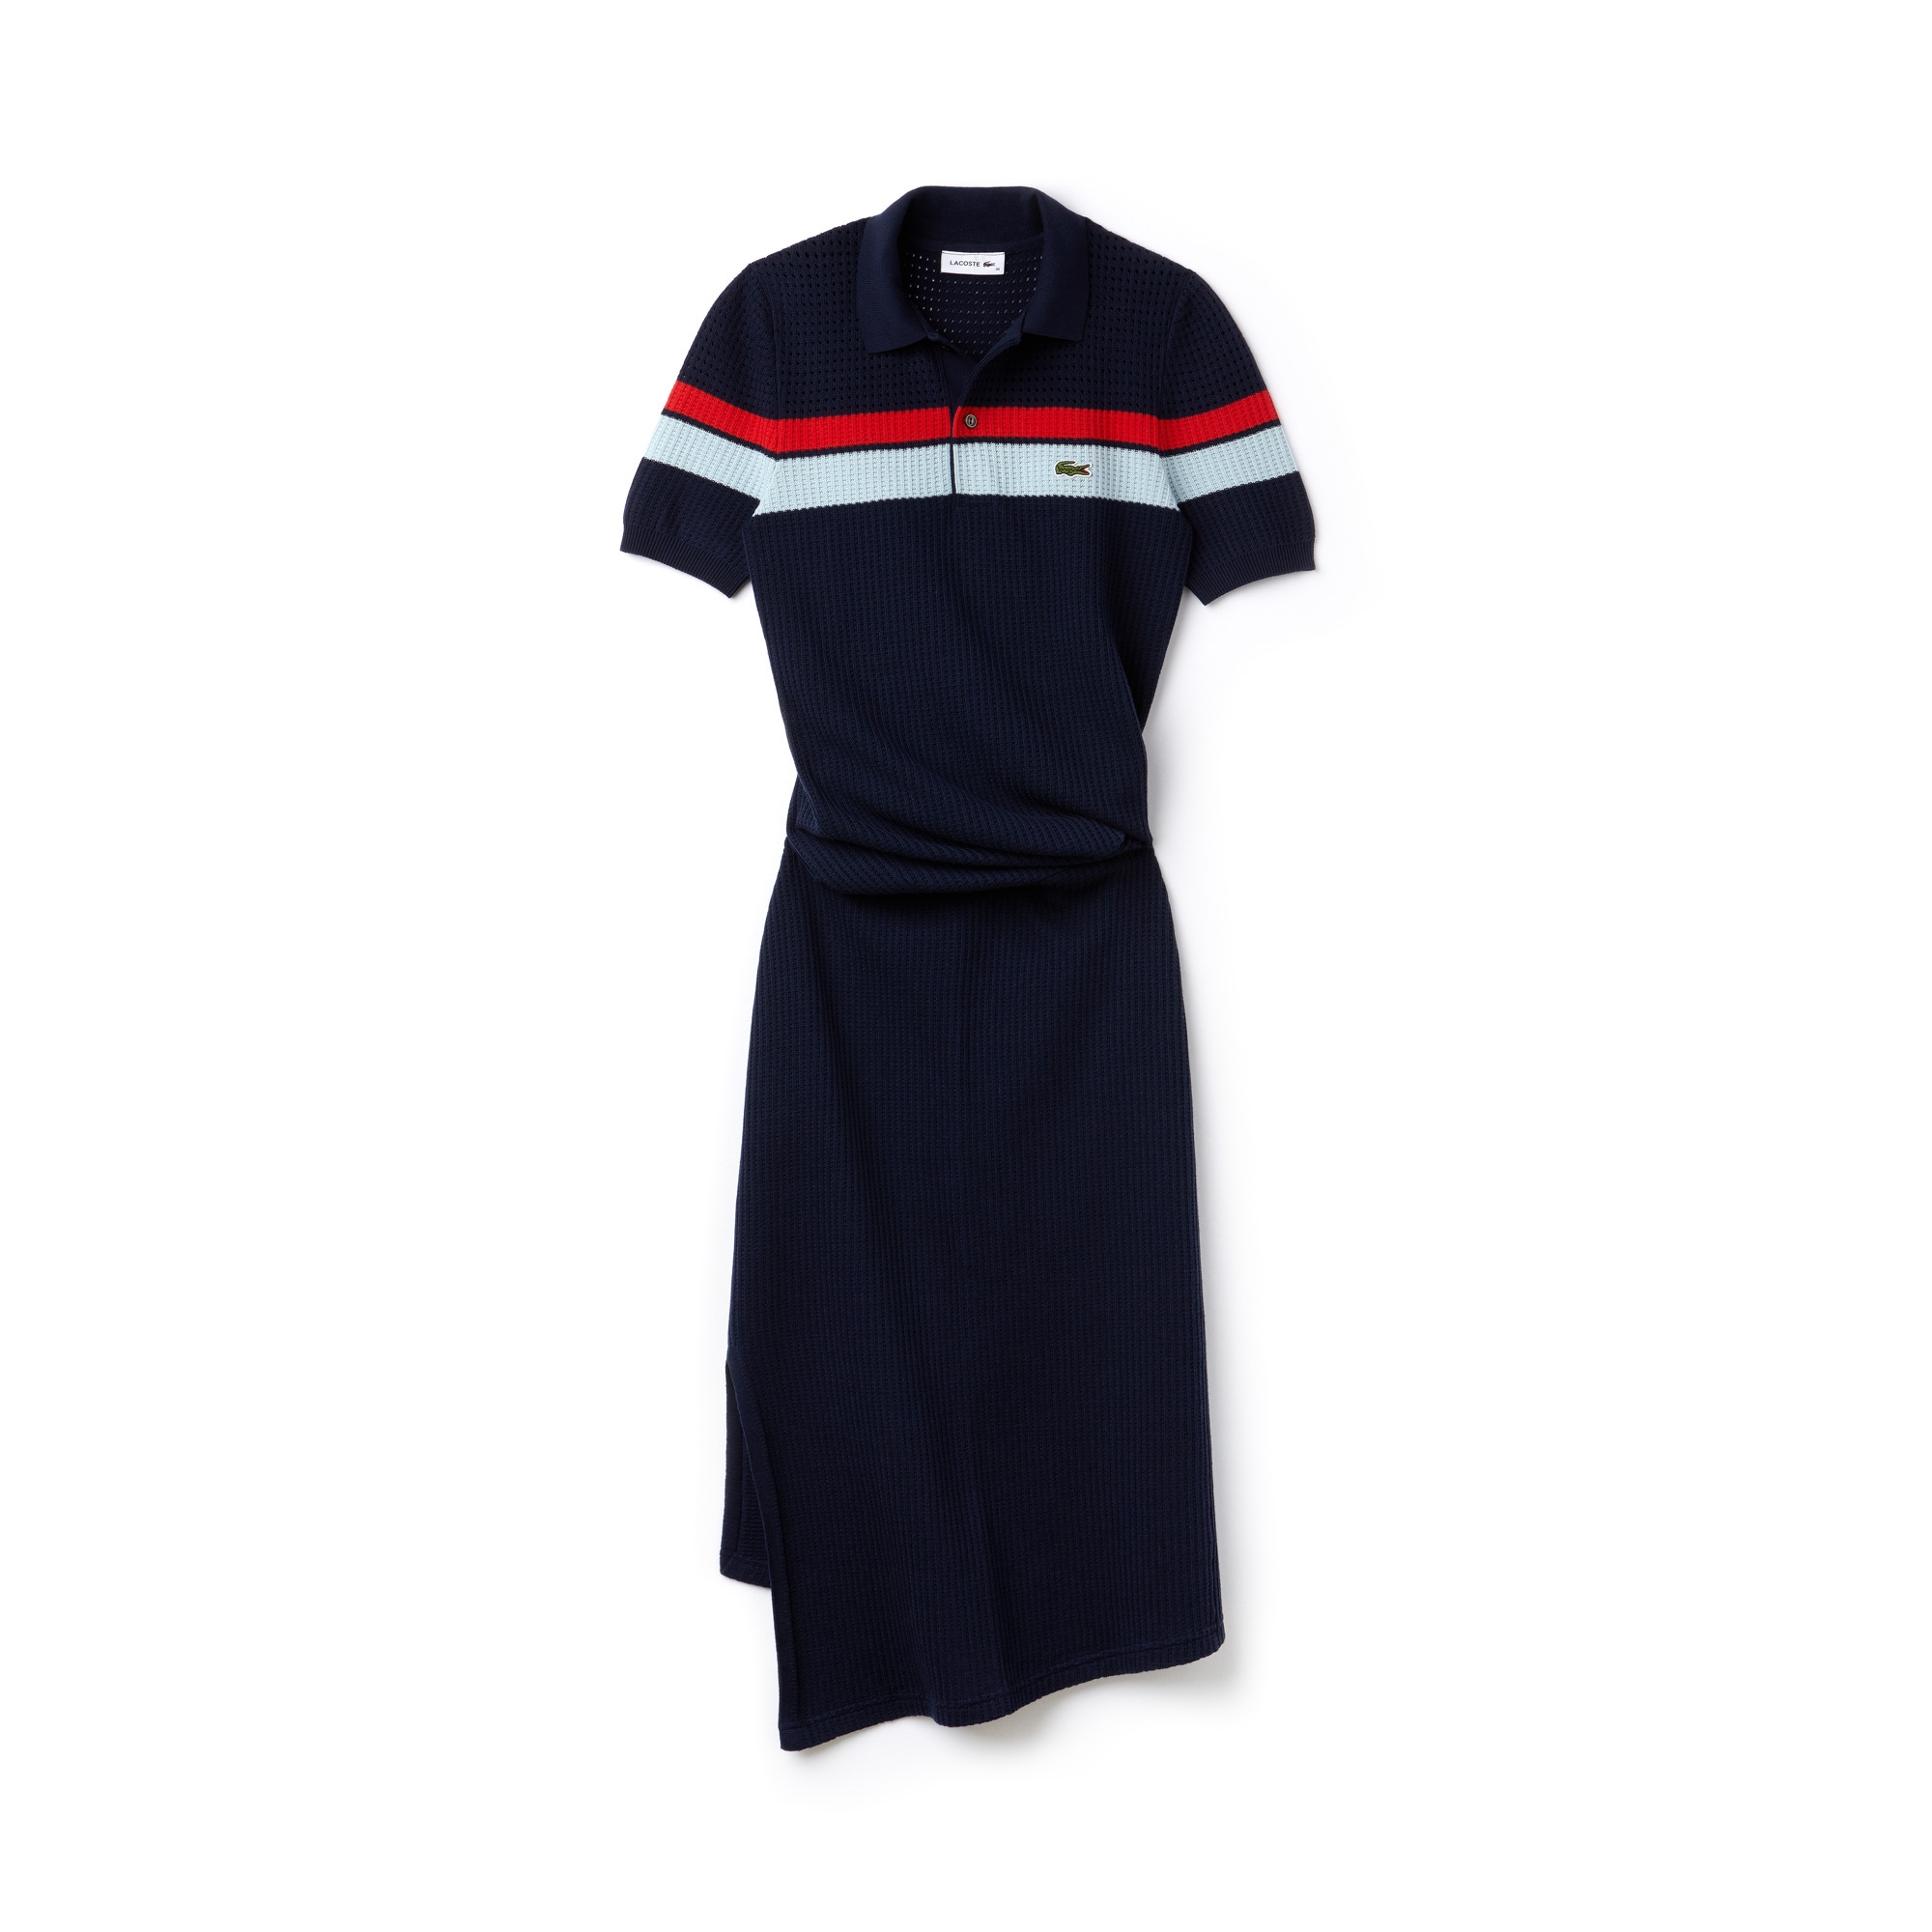 Women's Fashion Show Striped Cotton Knit Twisted Polo Dress